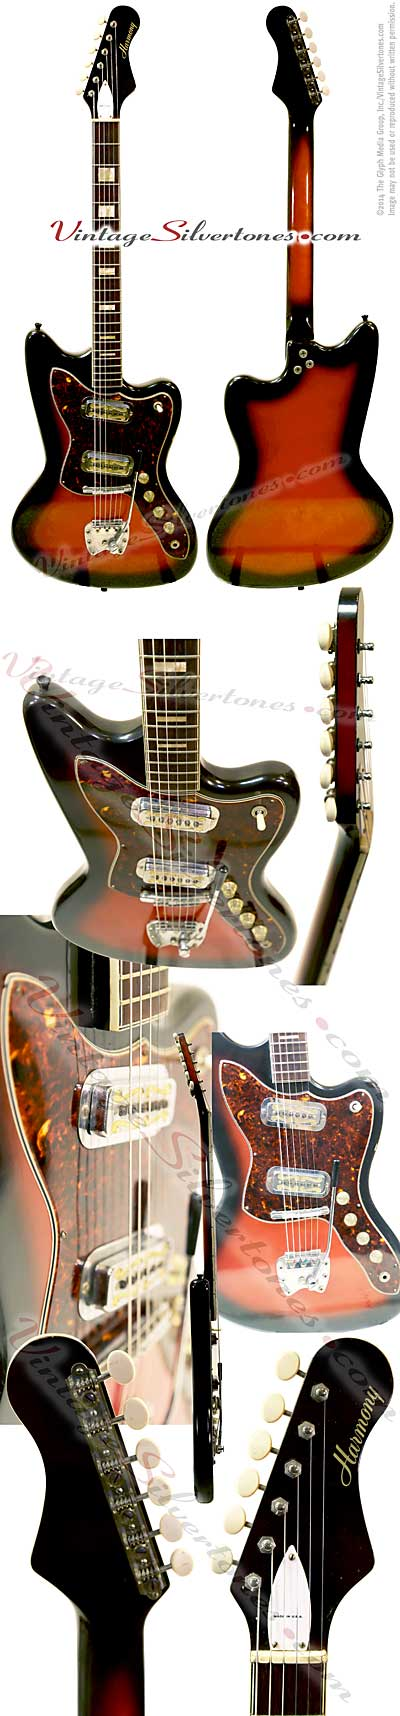 Harmony H19 Silhouette, 2 single coil pickup electric guitar solid body Cherry Redburst, made in Chicago Harmony Holy Grail model circa 1965